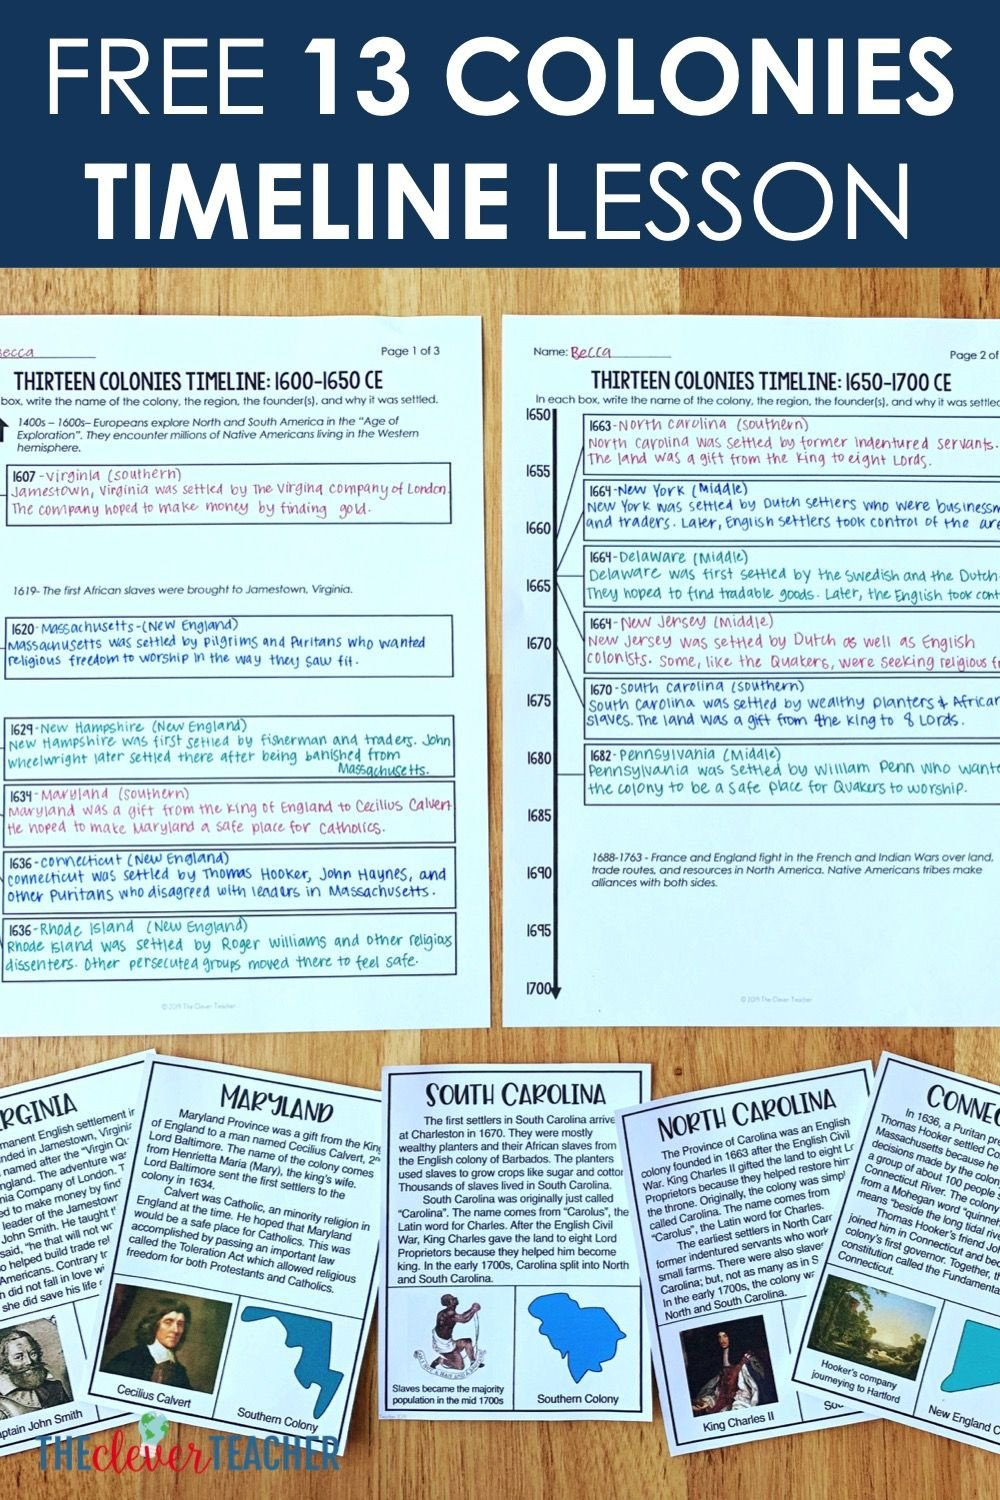 Timeline Worksheets for Middle School Free 13 Colonies Timeline Lesson